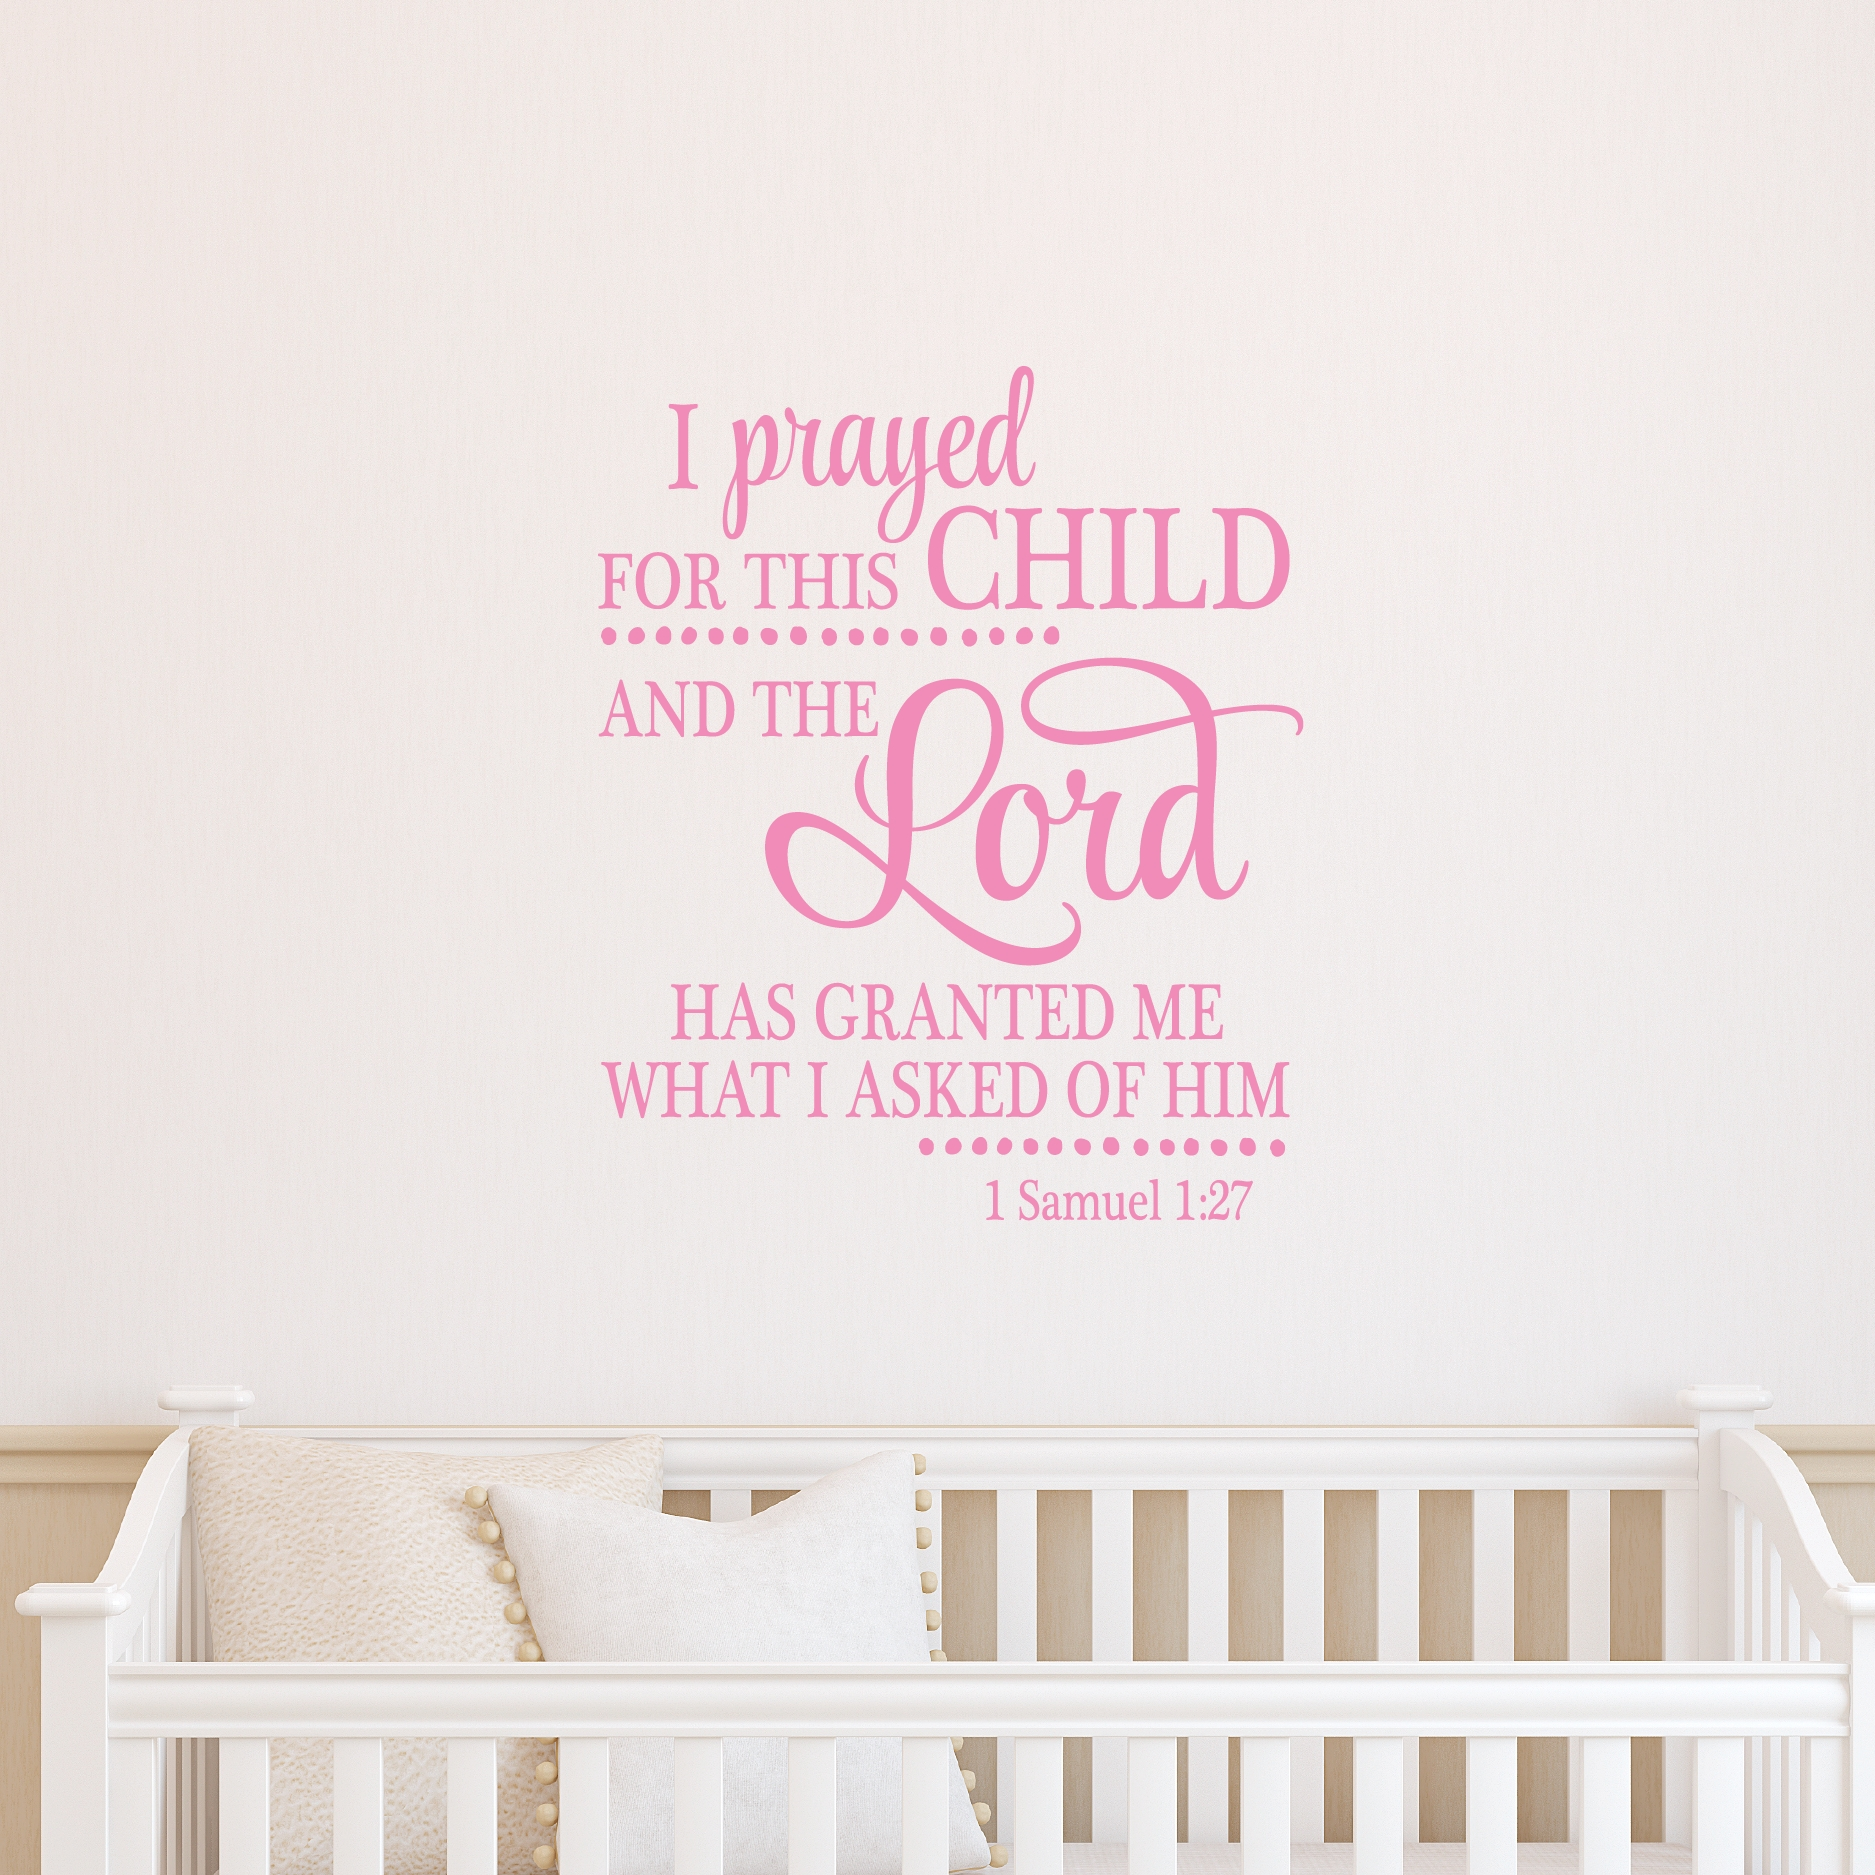 I Prayed For This Child Wall Quotes™ Decal | Wallquotes Intended For For This Child I Prayed Wall Art (View 2 of 20)